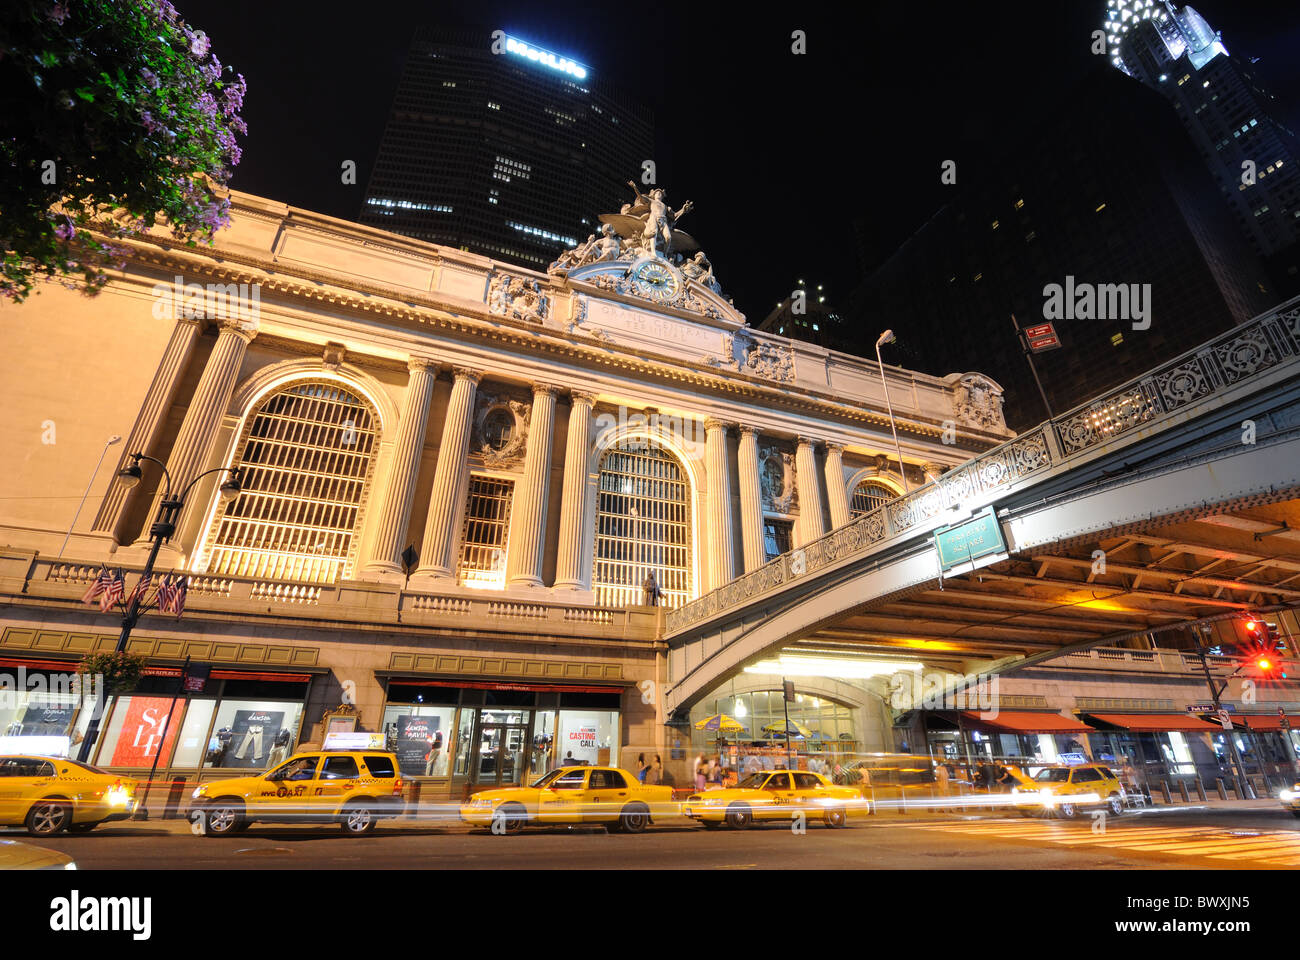 Grand Central Terminal at 42nd Street in New York, New York, USA. - Stock Image